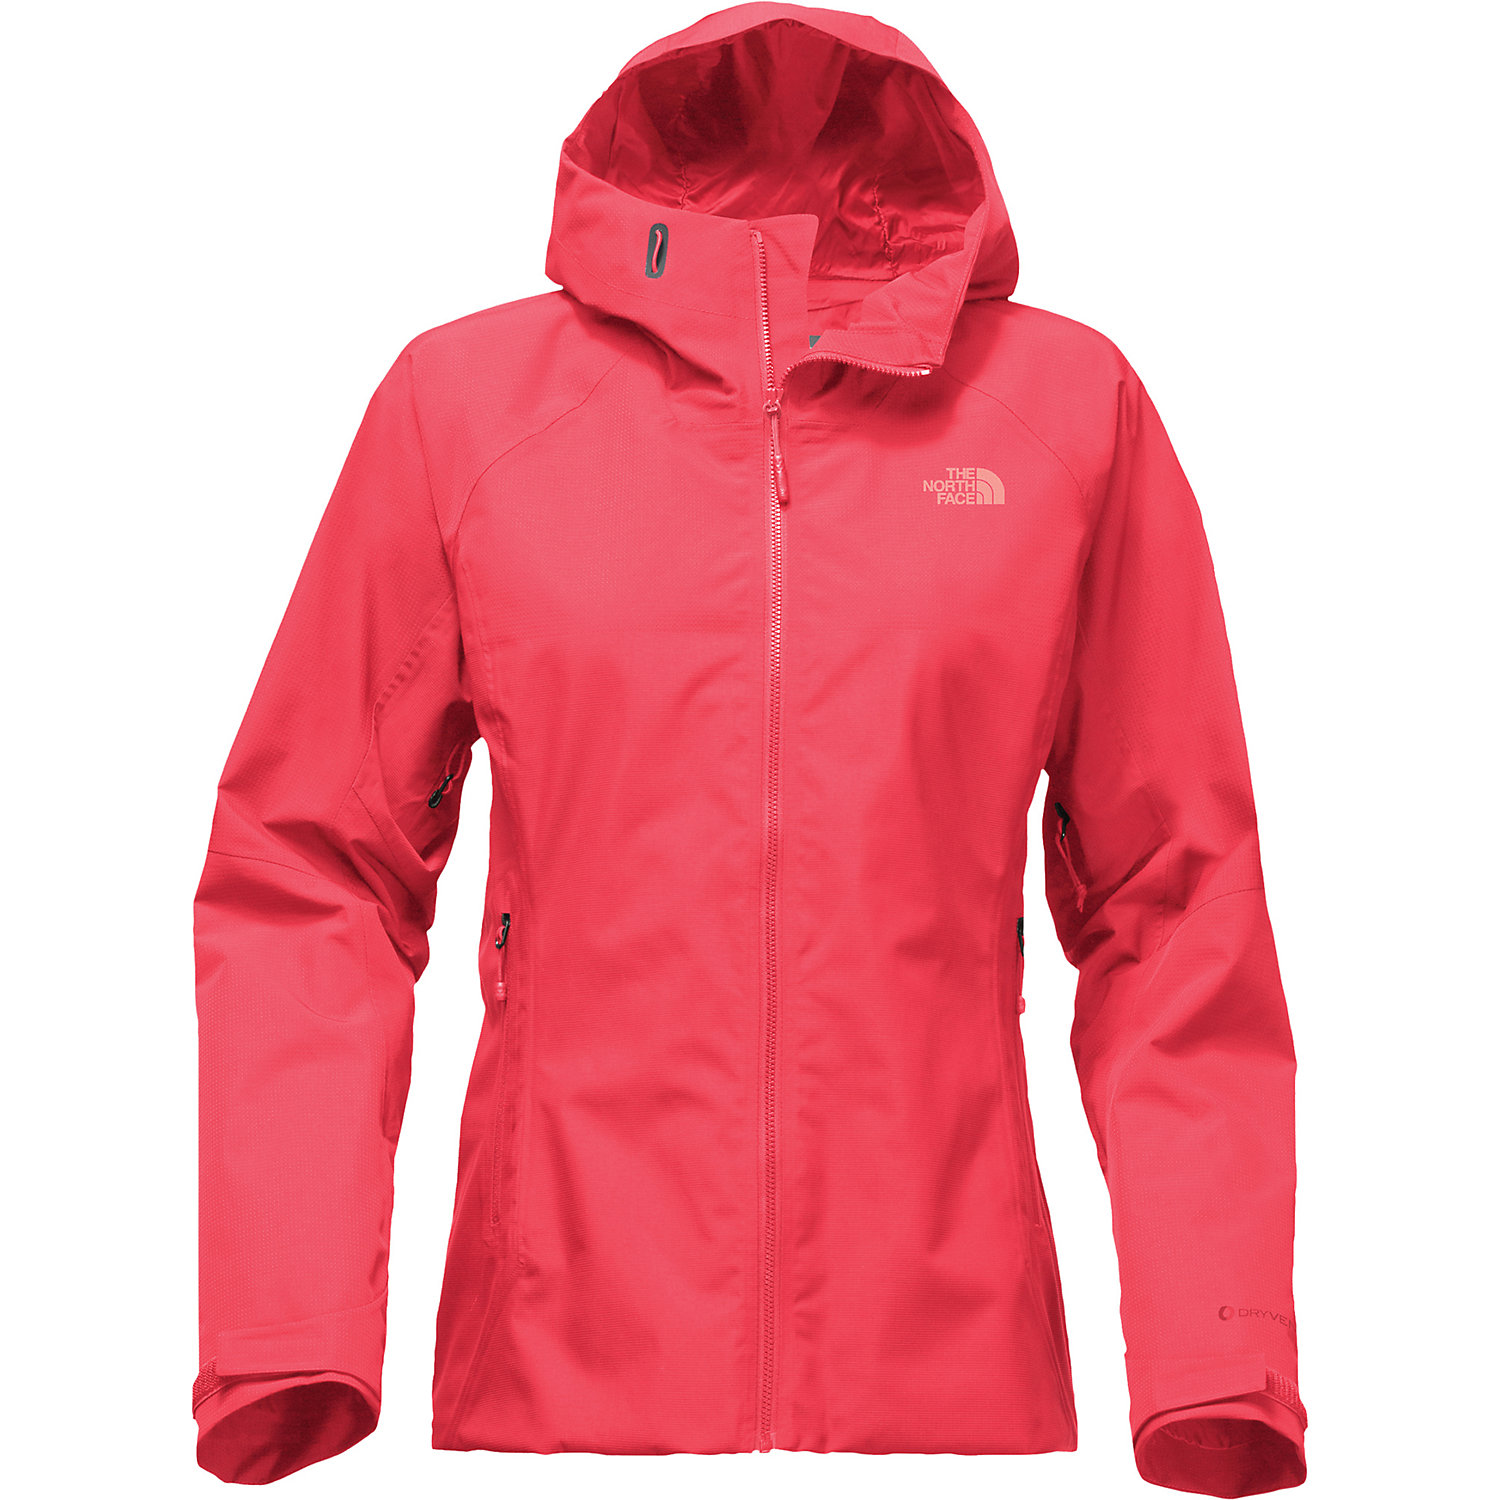 00299e854 The North Face Women's Fuseform Montro Jacket